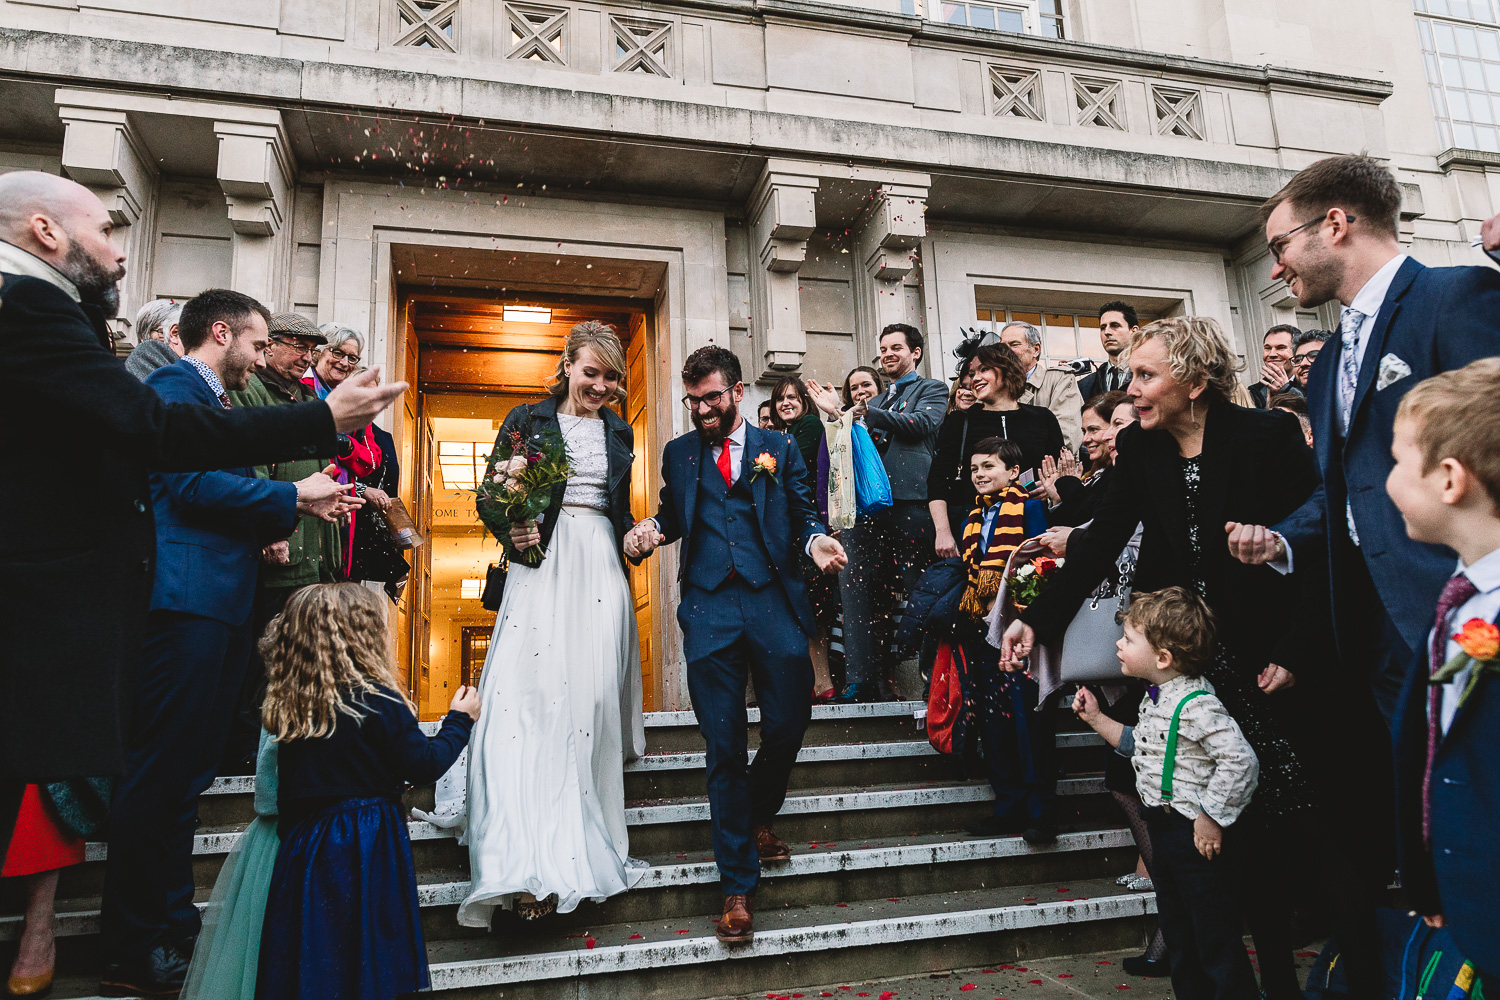 Clapton Country Club and Hackney Town Hall Wedding-33.jpg